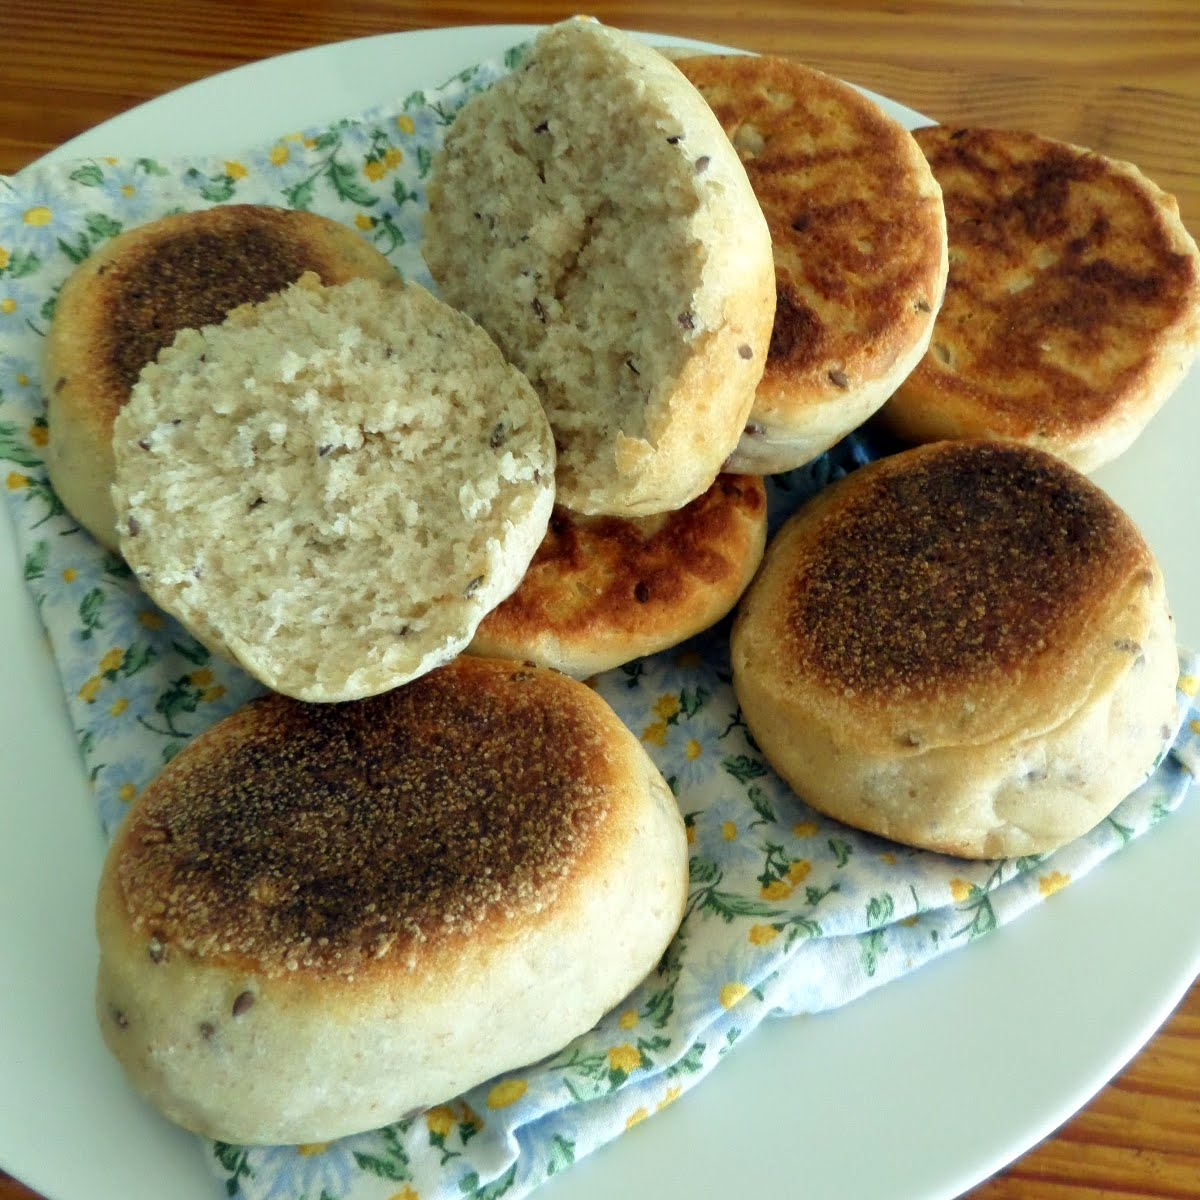 Multigrain English Muffins (Sourdough) | Joybee, What's for Dinner?